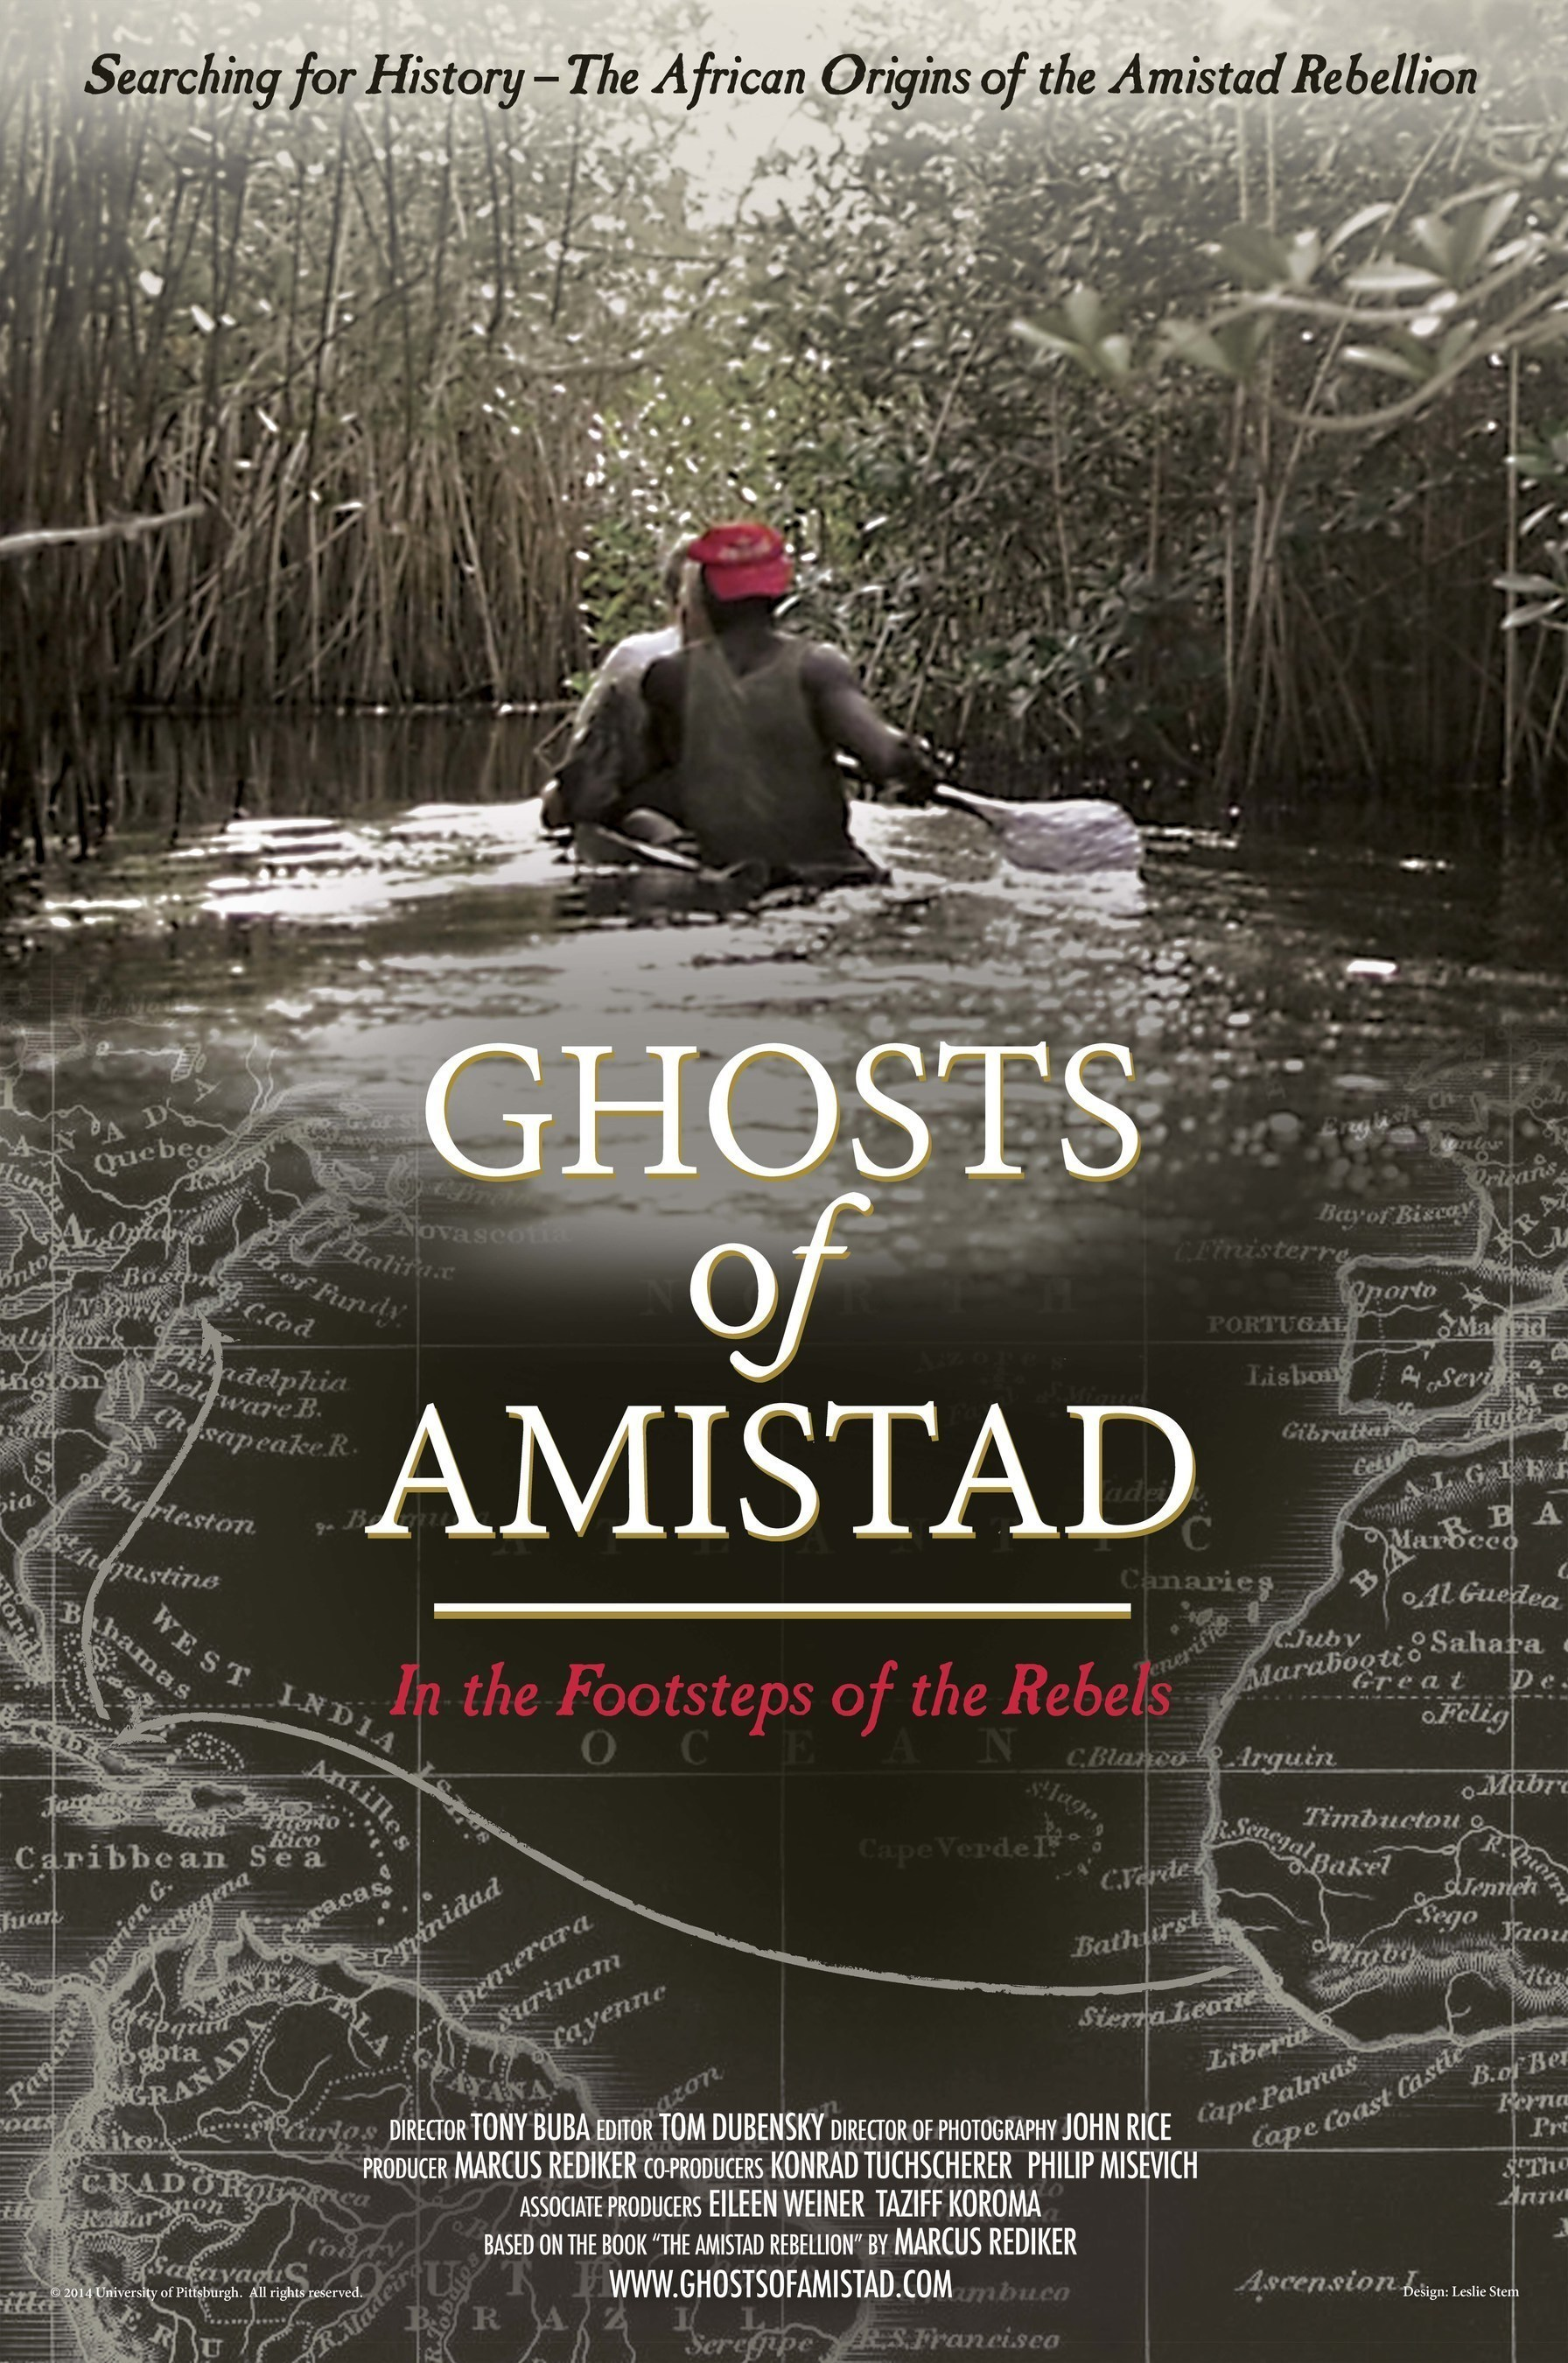 A Film by Tony Buba and Marcus Rediker, 'Ghosts of Amistad: In the Footsteps of the Rebels,' Will